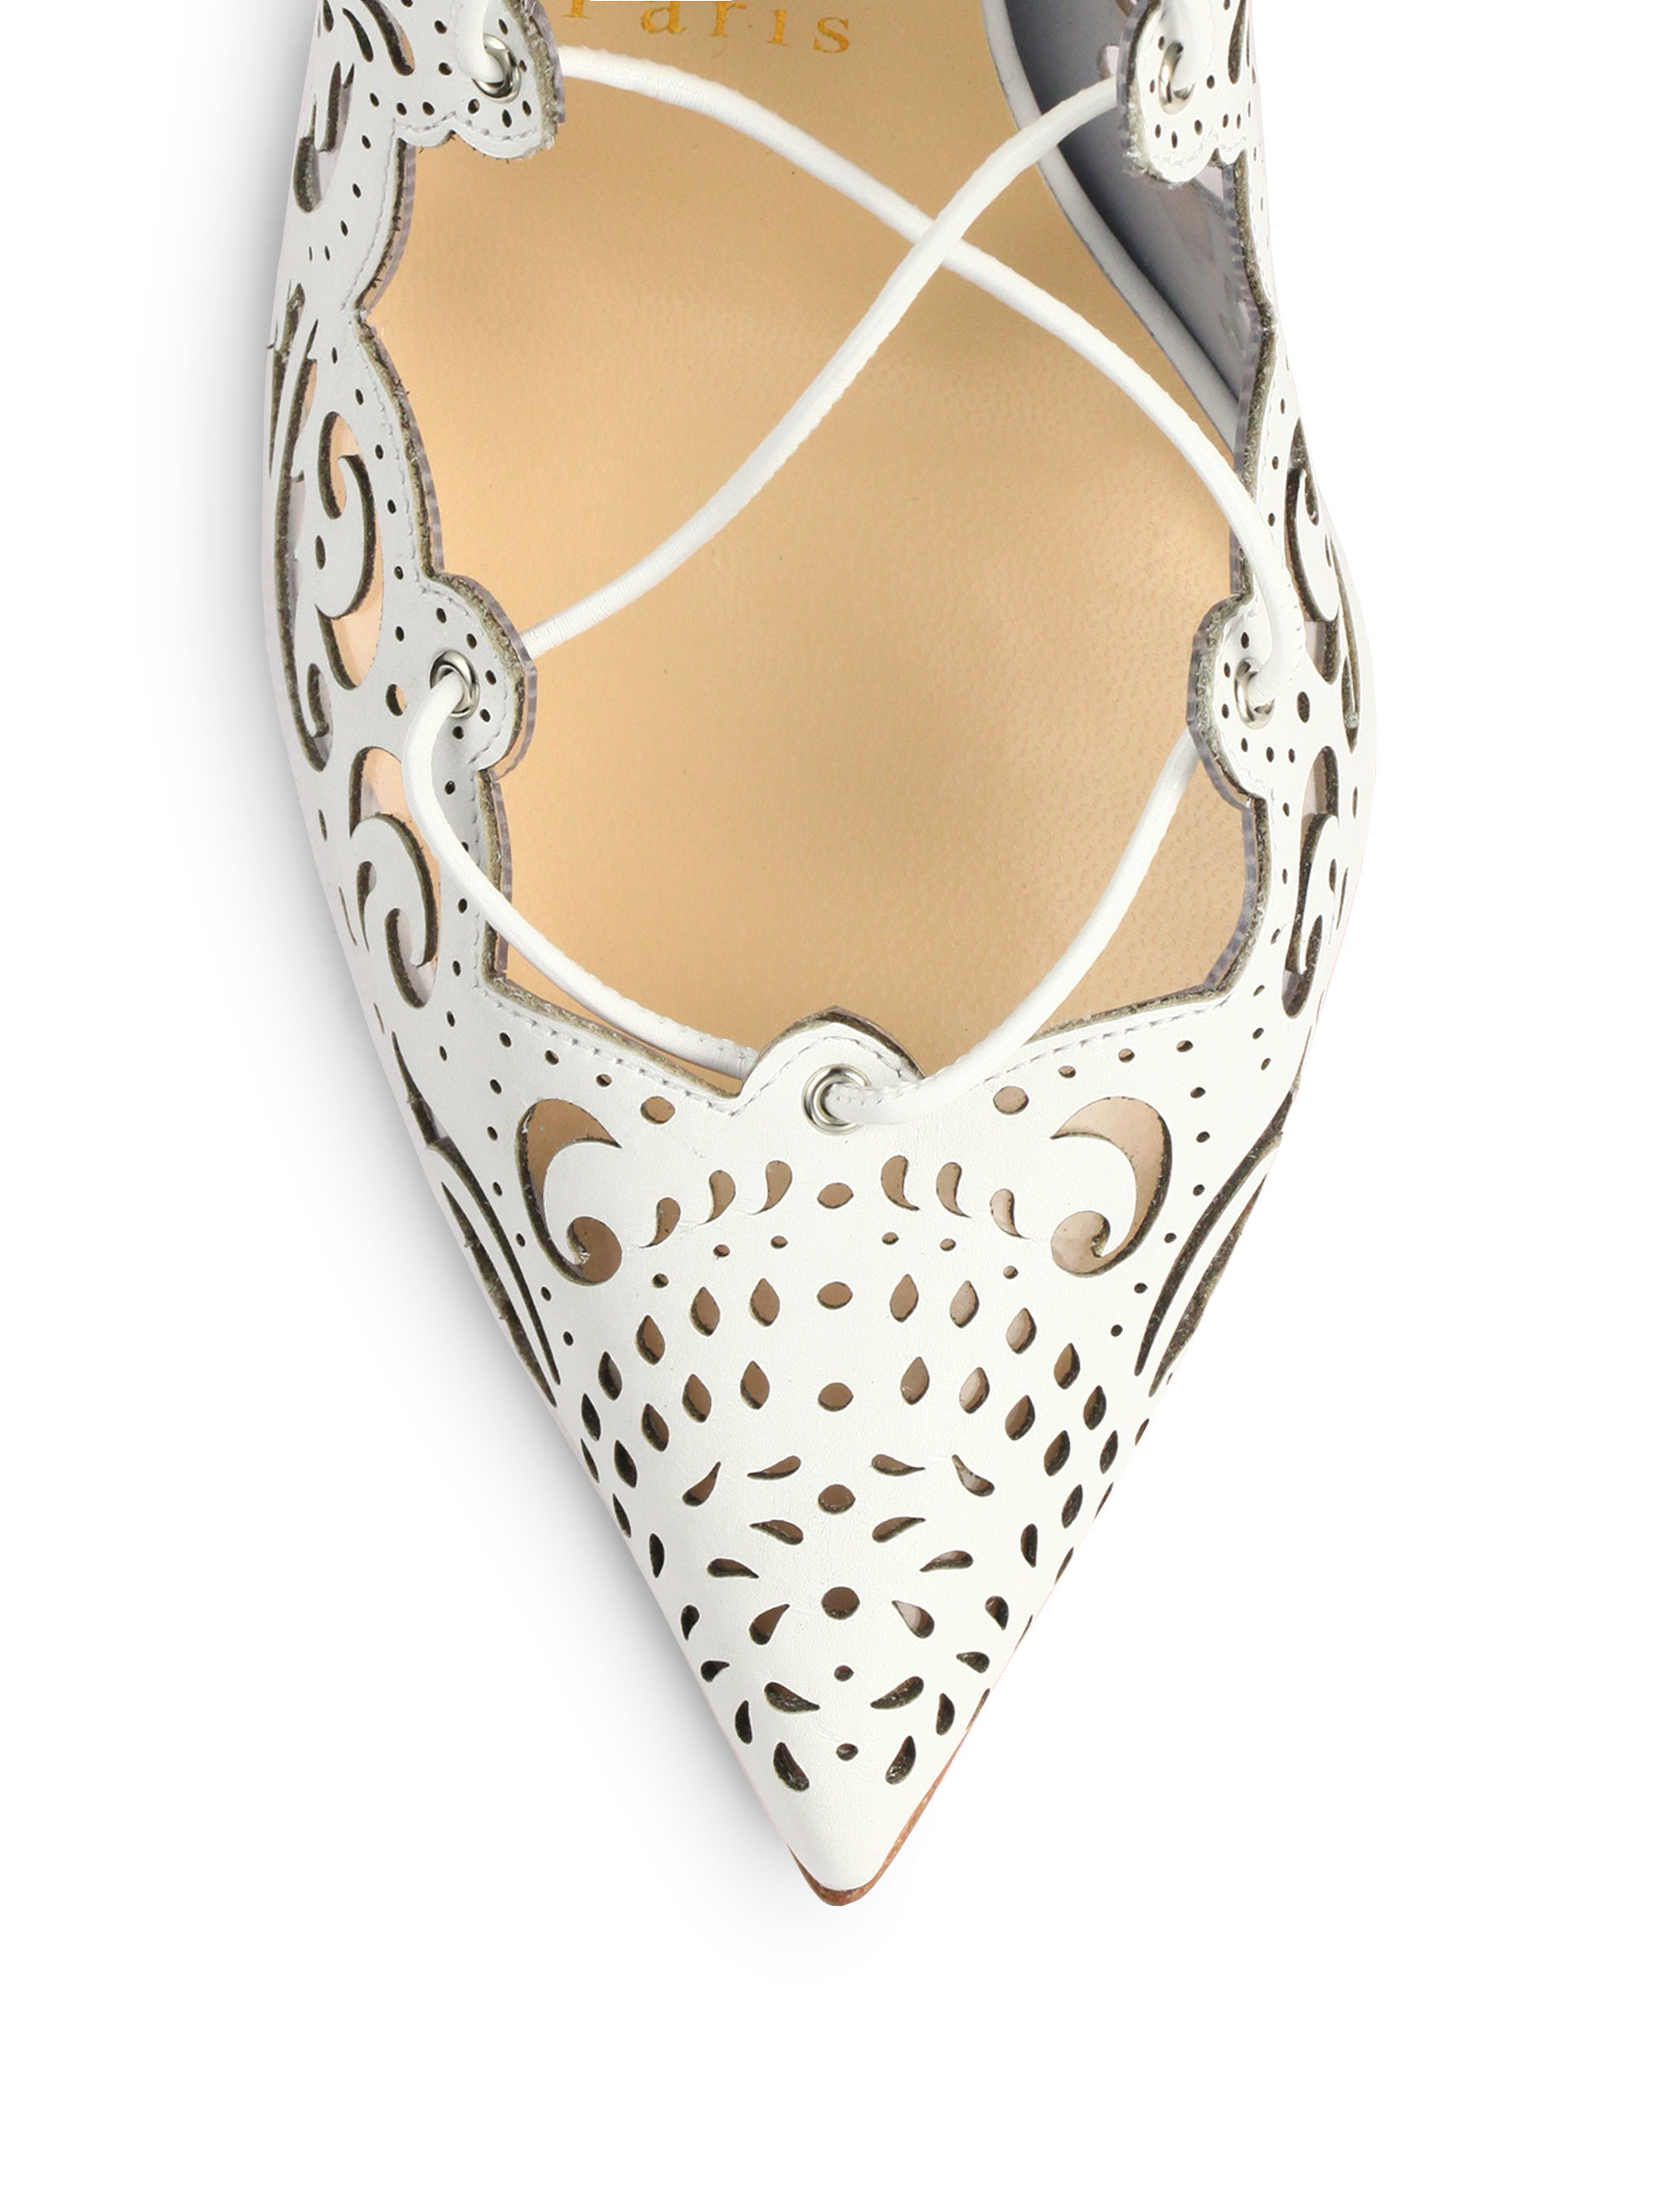 Christian louboutin Impera Lasercut Leather Pumps in White | Lyst